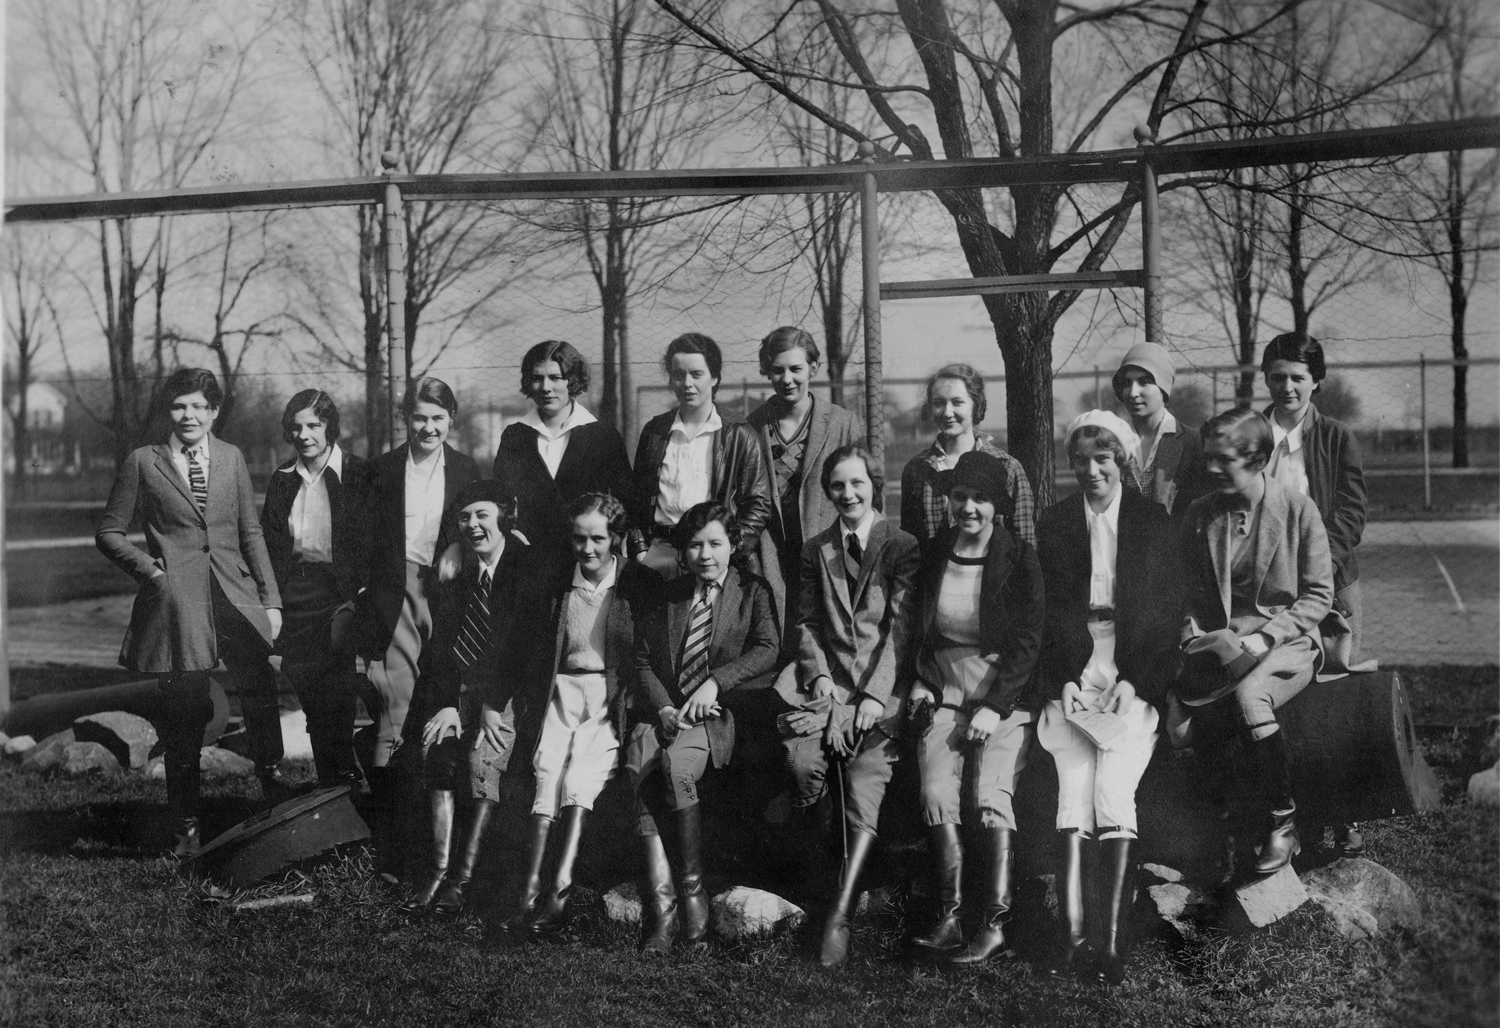 Equestrian Club circa 1930 at Saint Mary